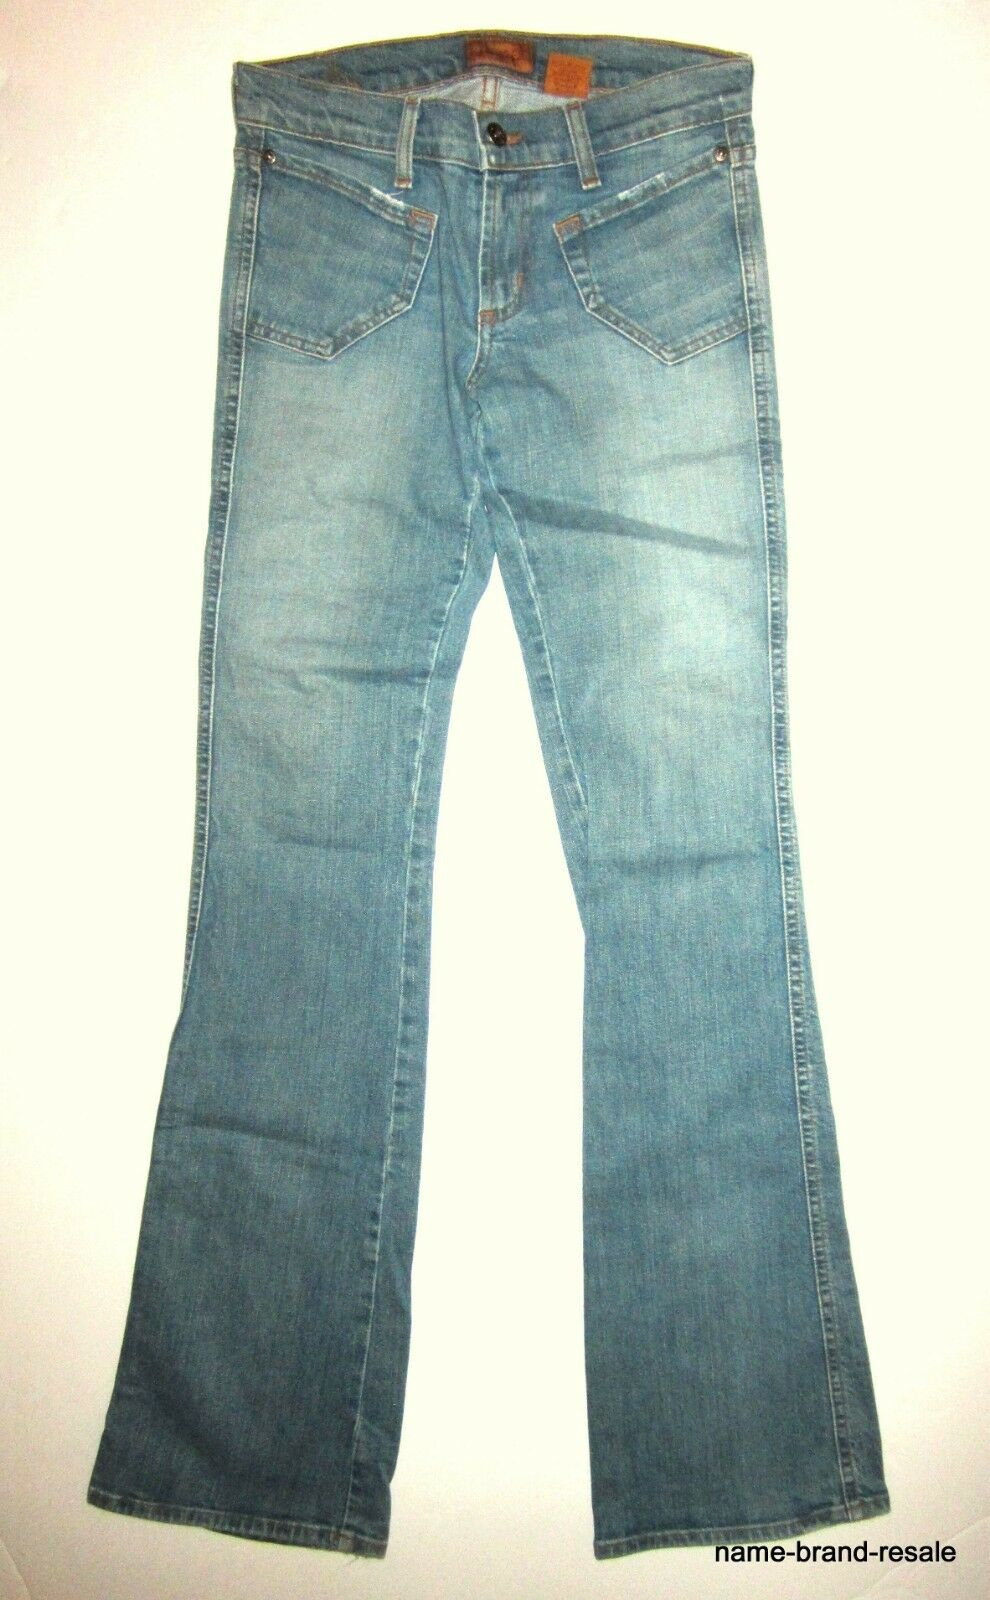 JAMES Preserved Denim JEANS Womens 26 x 34 LONG TALL Light Wash Bootcut DESIGNER